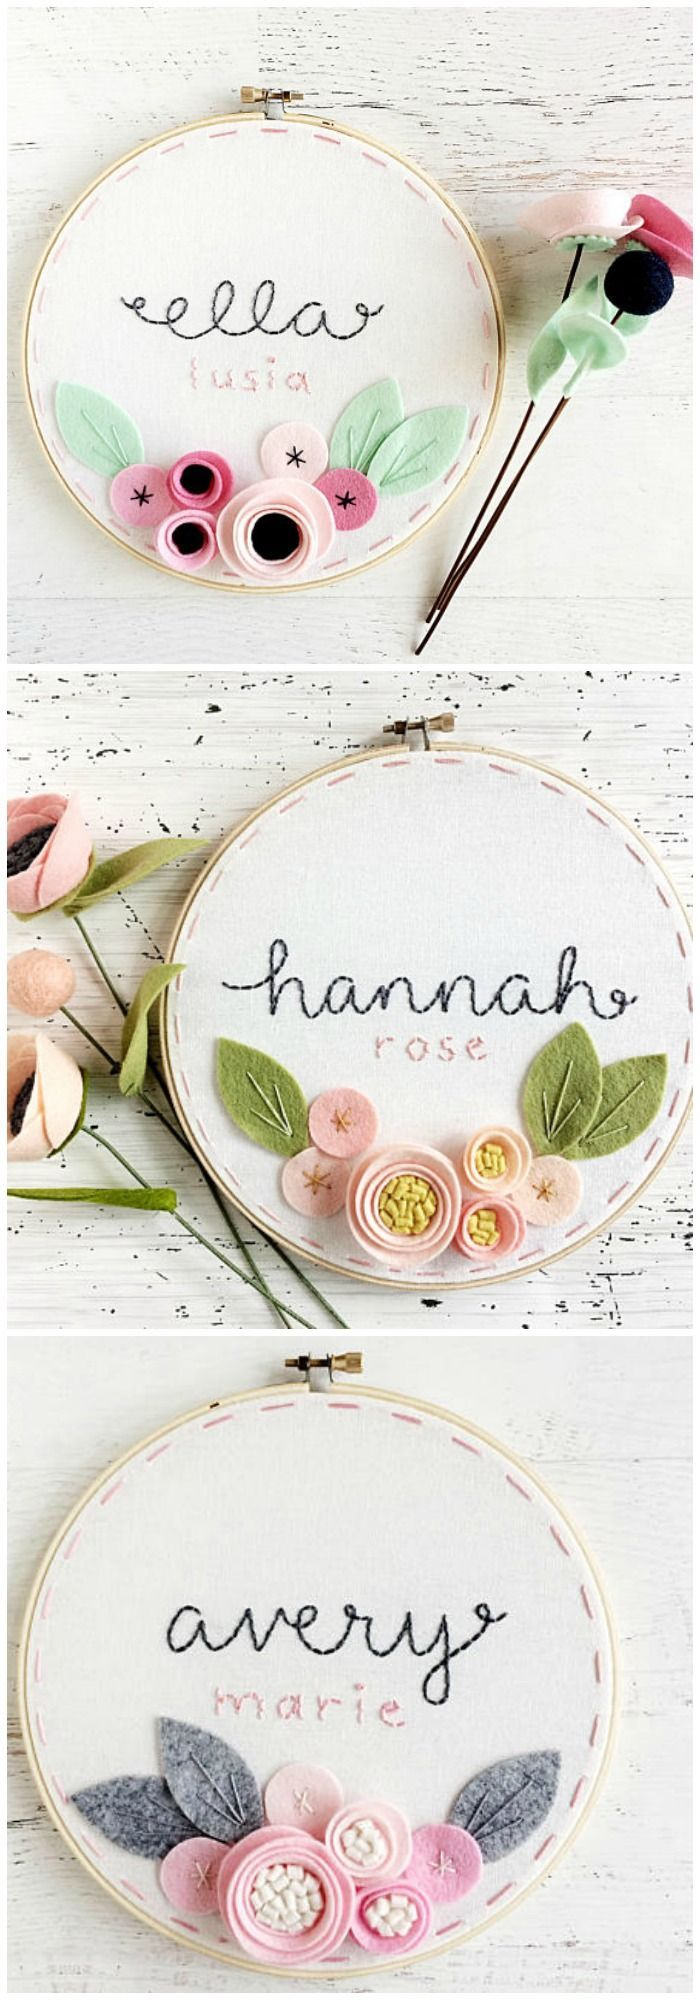 What a sweet addition to a nursery personalized embroidery hoop